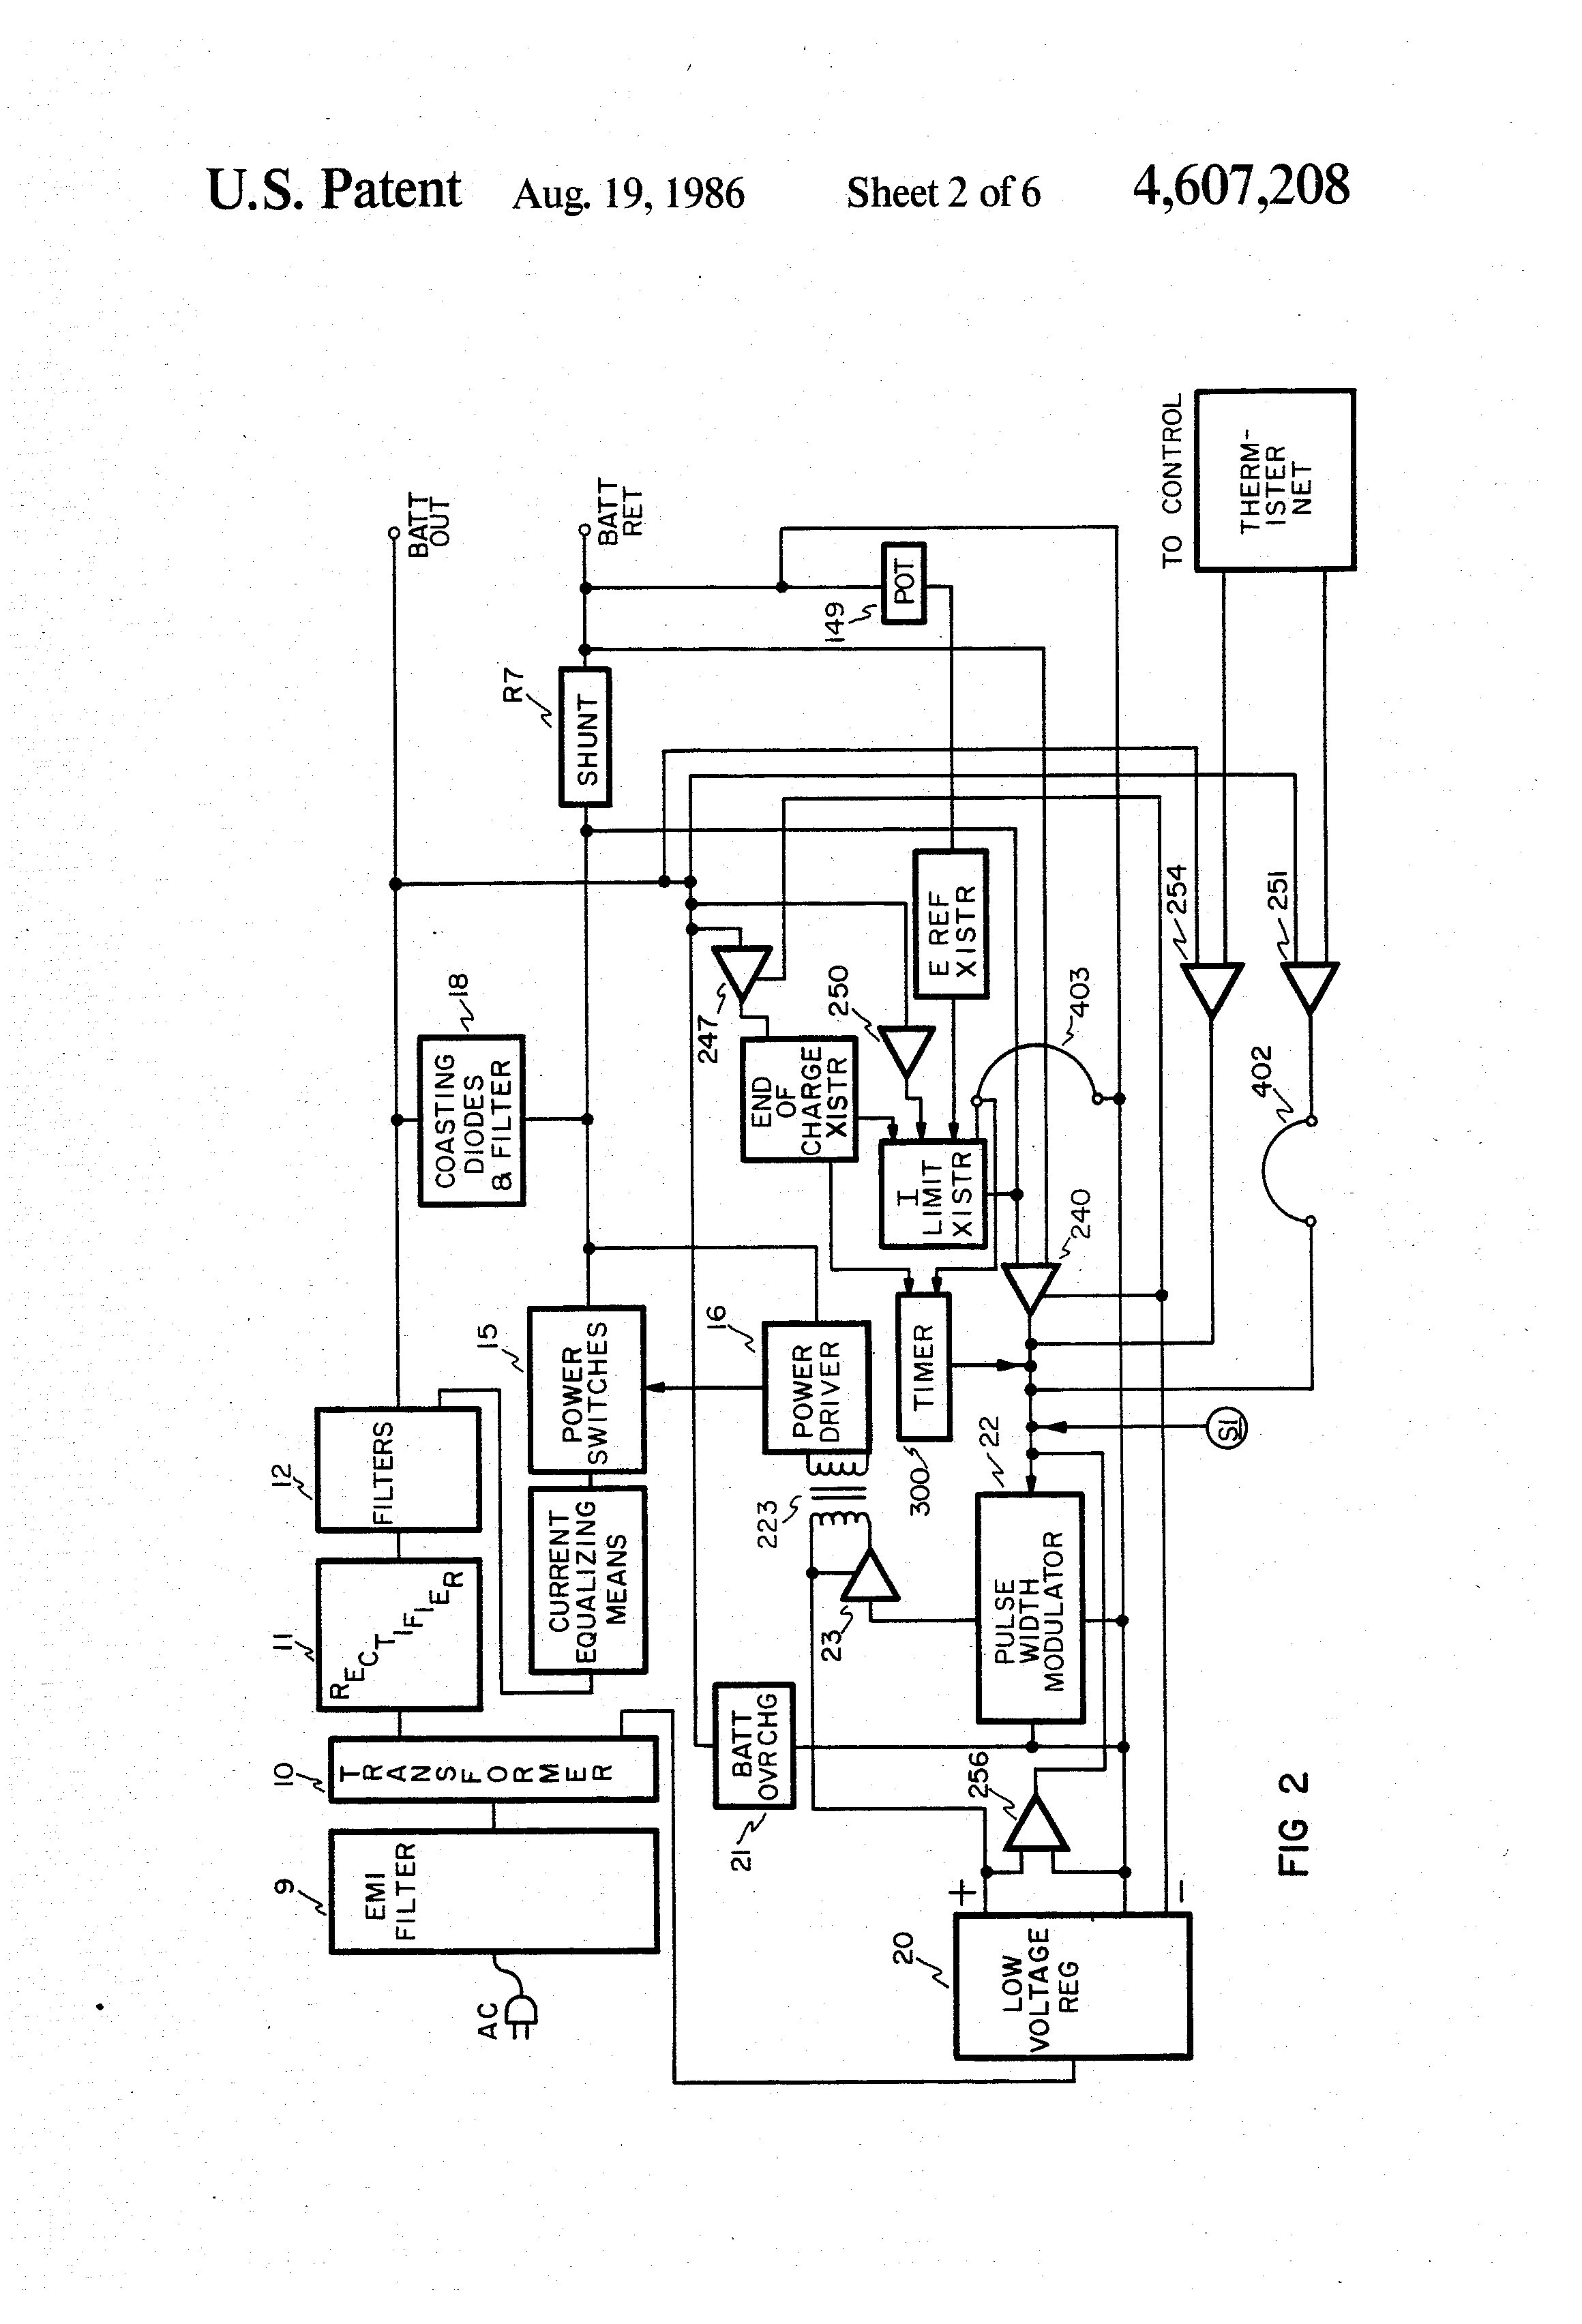 Everstart Battery Charger Wiring Diagram : everstart, battery, charger, wiring, diagram, Schumacher, Battery, Charger, 5212a, Wiring, Diagram, Drivenhelios